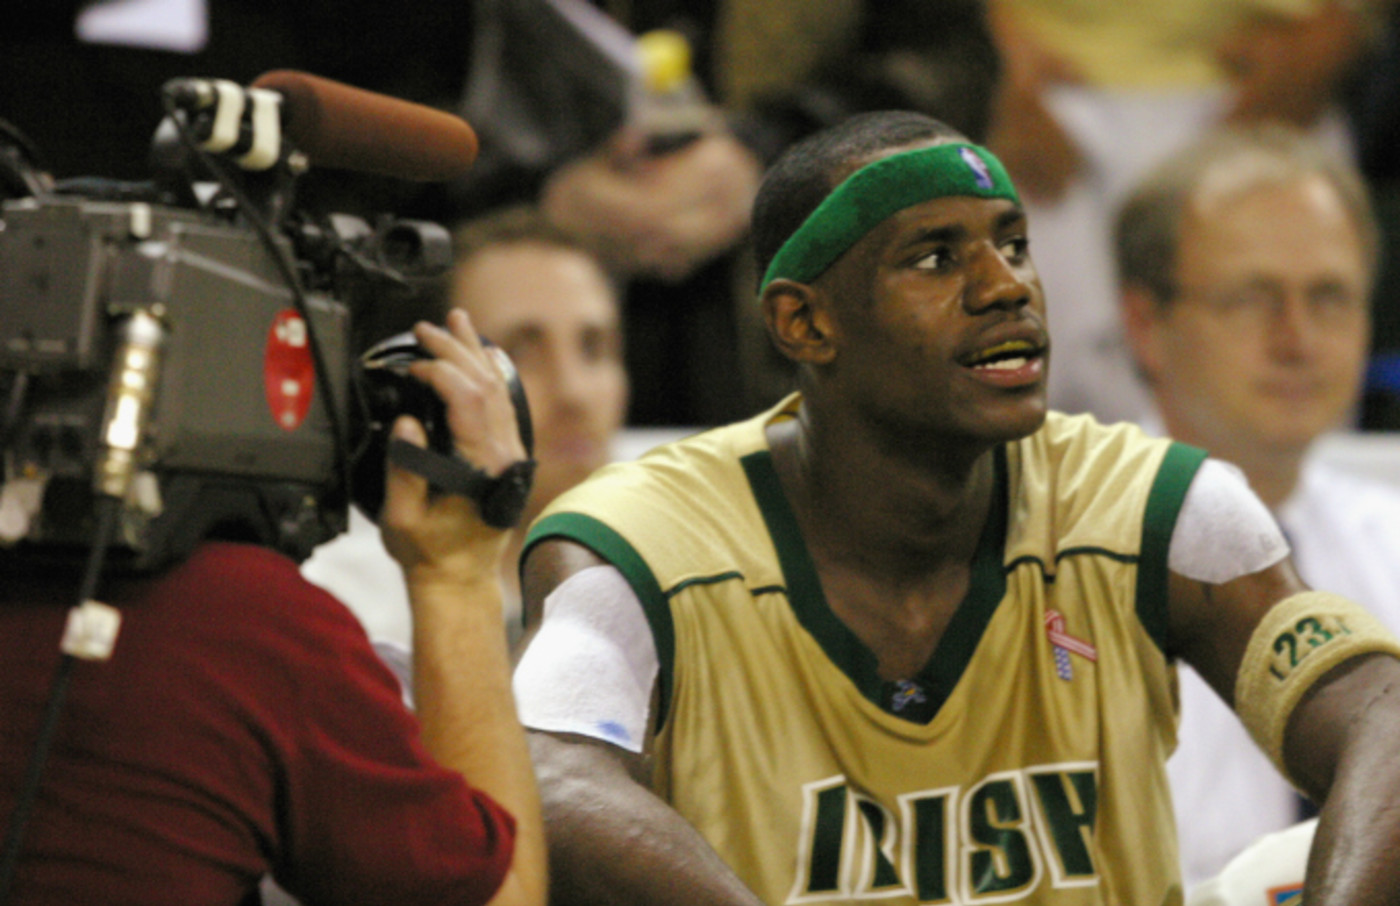 LeBron James #23 of St. Vincent-St. Mary High School